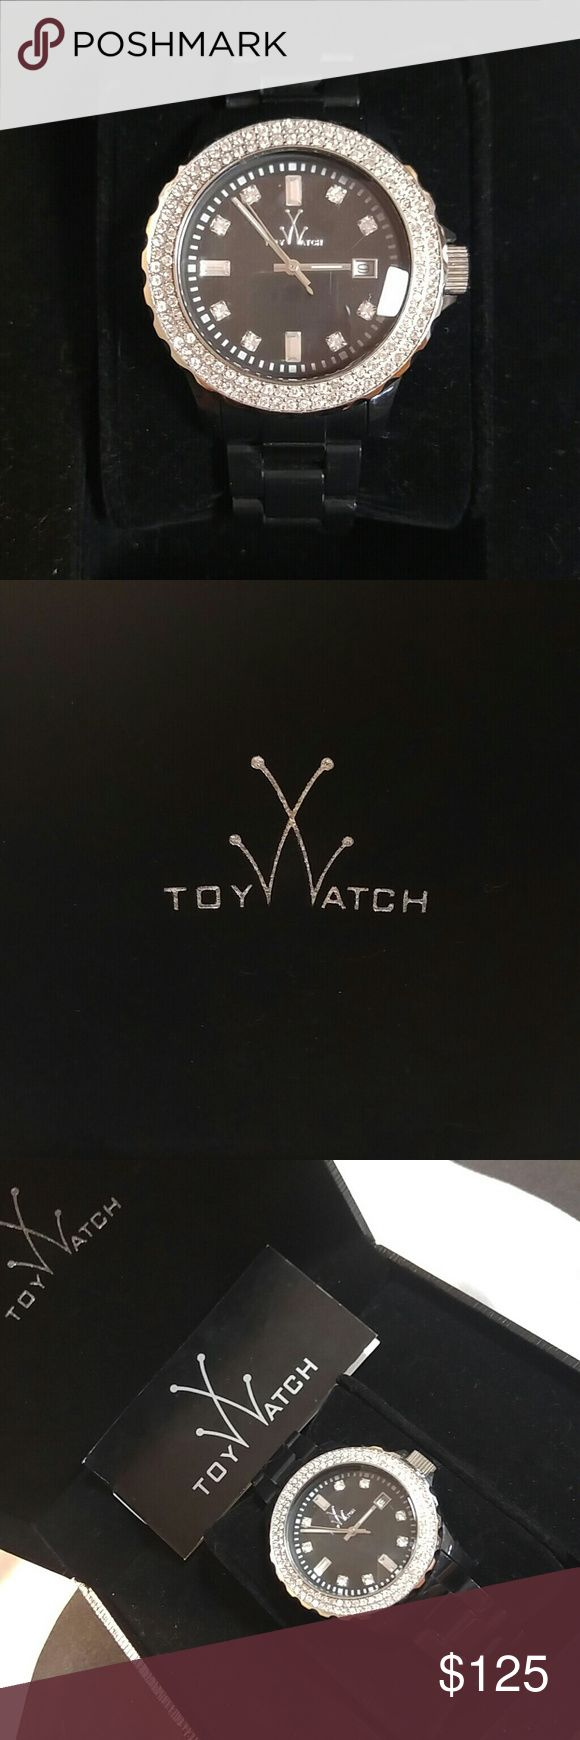 Toywatch large plasteramic Swarovski crystal bezel -EUC💕💯AUTHENTIC! -ORIGINAL BOX,CARD & EXTRA LINK -ALL CRYSTALS IN TACT💯 -worn gently by GIGI📌 -very minor faint scratches in black plasterama but not obvious📌 -faint tiny unnoticeable smudge on face refer to picks its hard to even spot📌 -battery only cost $5 at your trusted jeweler📌 -QUARTZ MOVEMENT/DATE -STAINLESS STELL BACK -WATER RESISTANT 50 METERS -BOX SHOWS NO AGE -PURCHASED MANY YEARS AGO AT NEIMAN MARCUS -REFER TO PHOTO TO SEE…